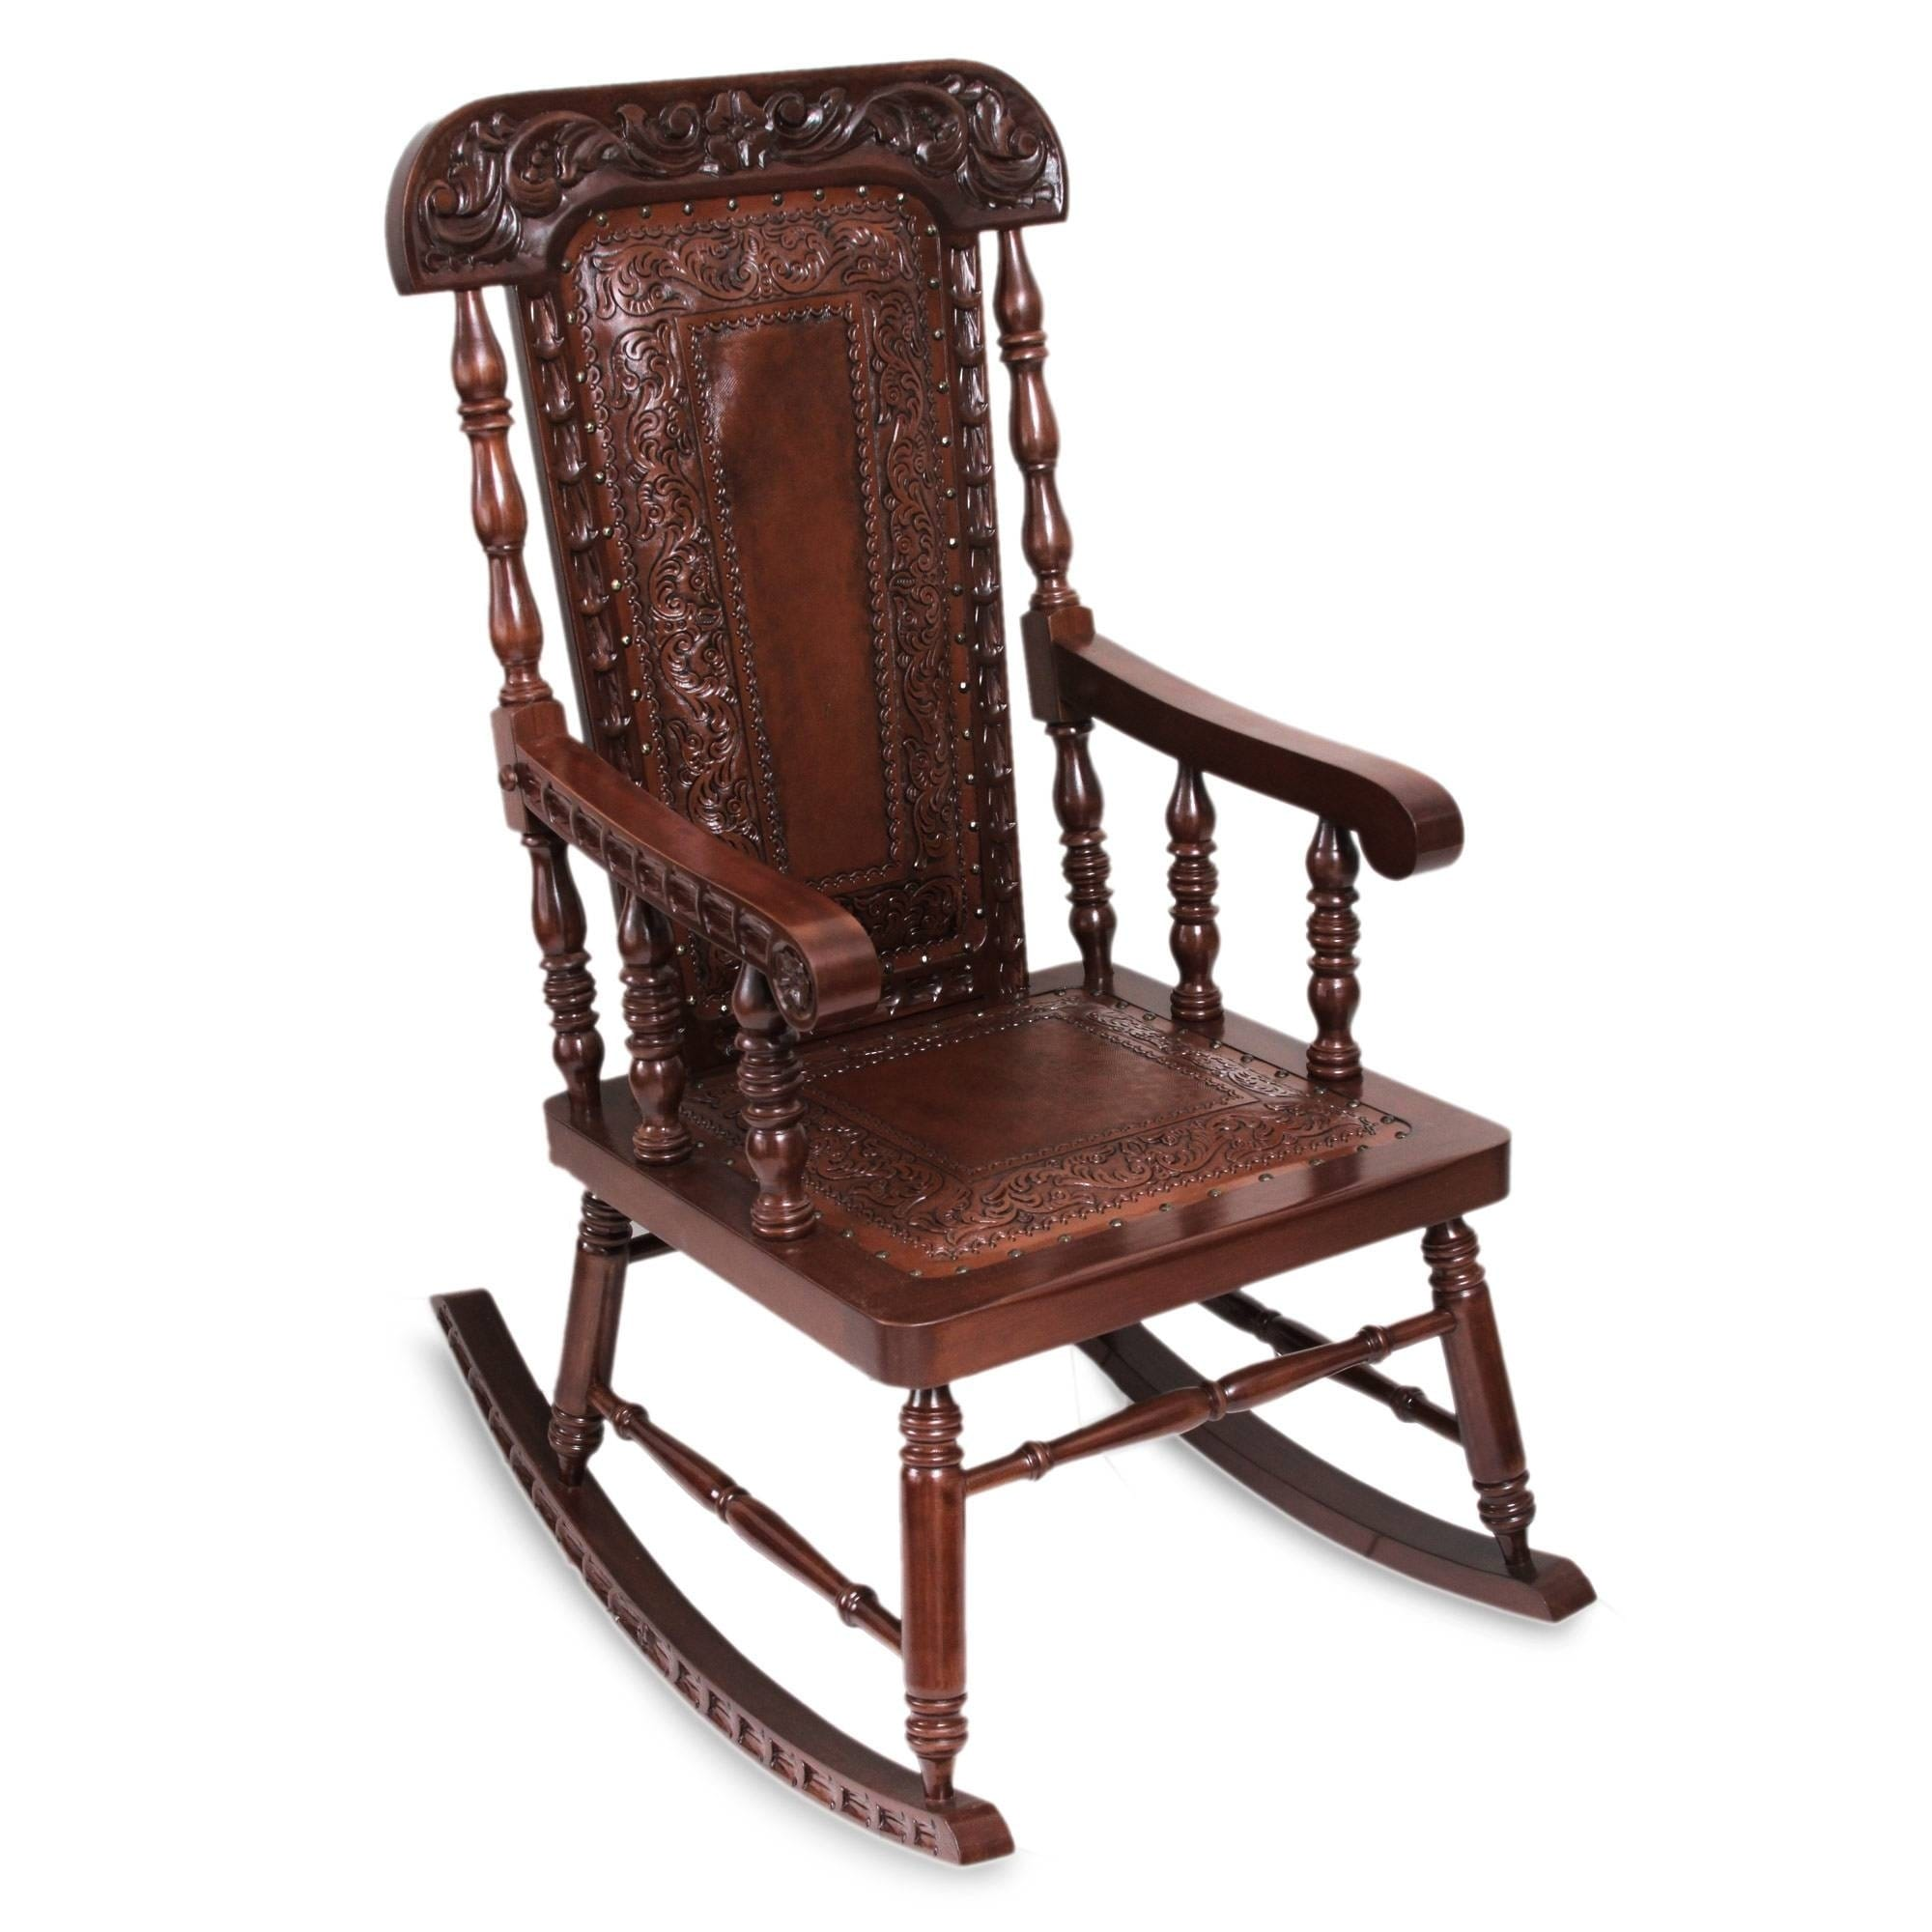 handmade rocking chairs personalized chair for baby shop nobility cedar and leather peru on sale free shipping today overstock com 2669802